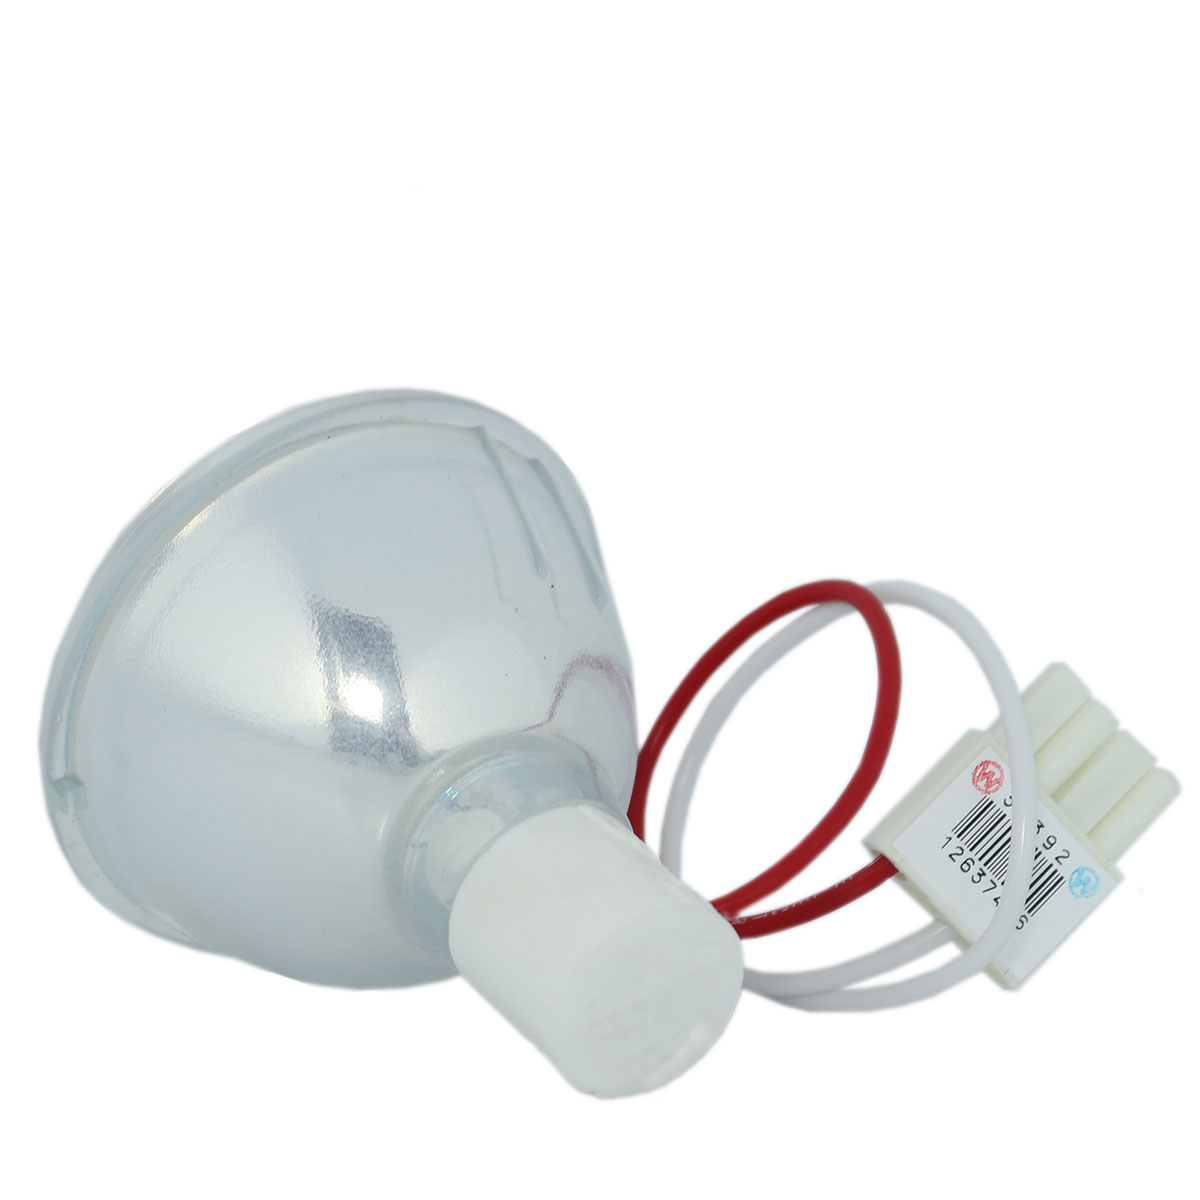 Lutema Economy Bulb for InFocus Work Big IN26 Projector (Lamp Only) - image 2 de 5